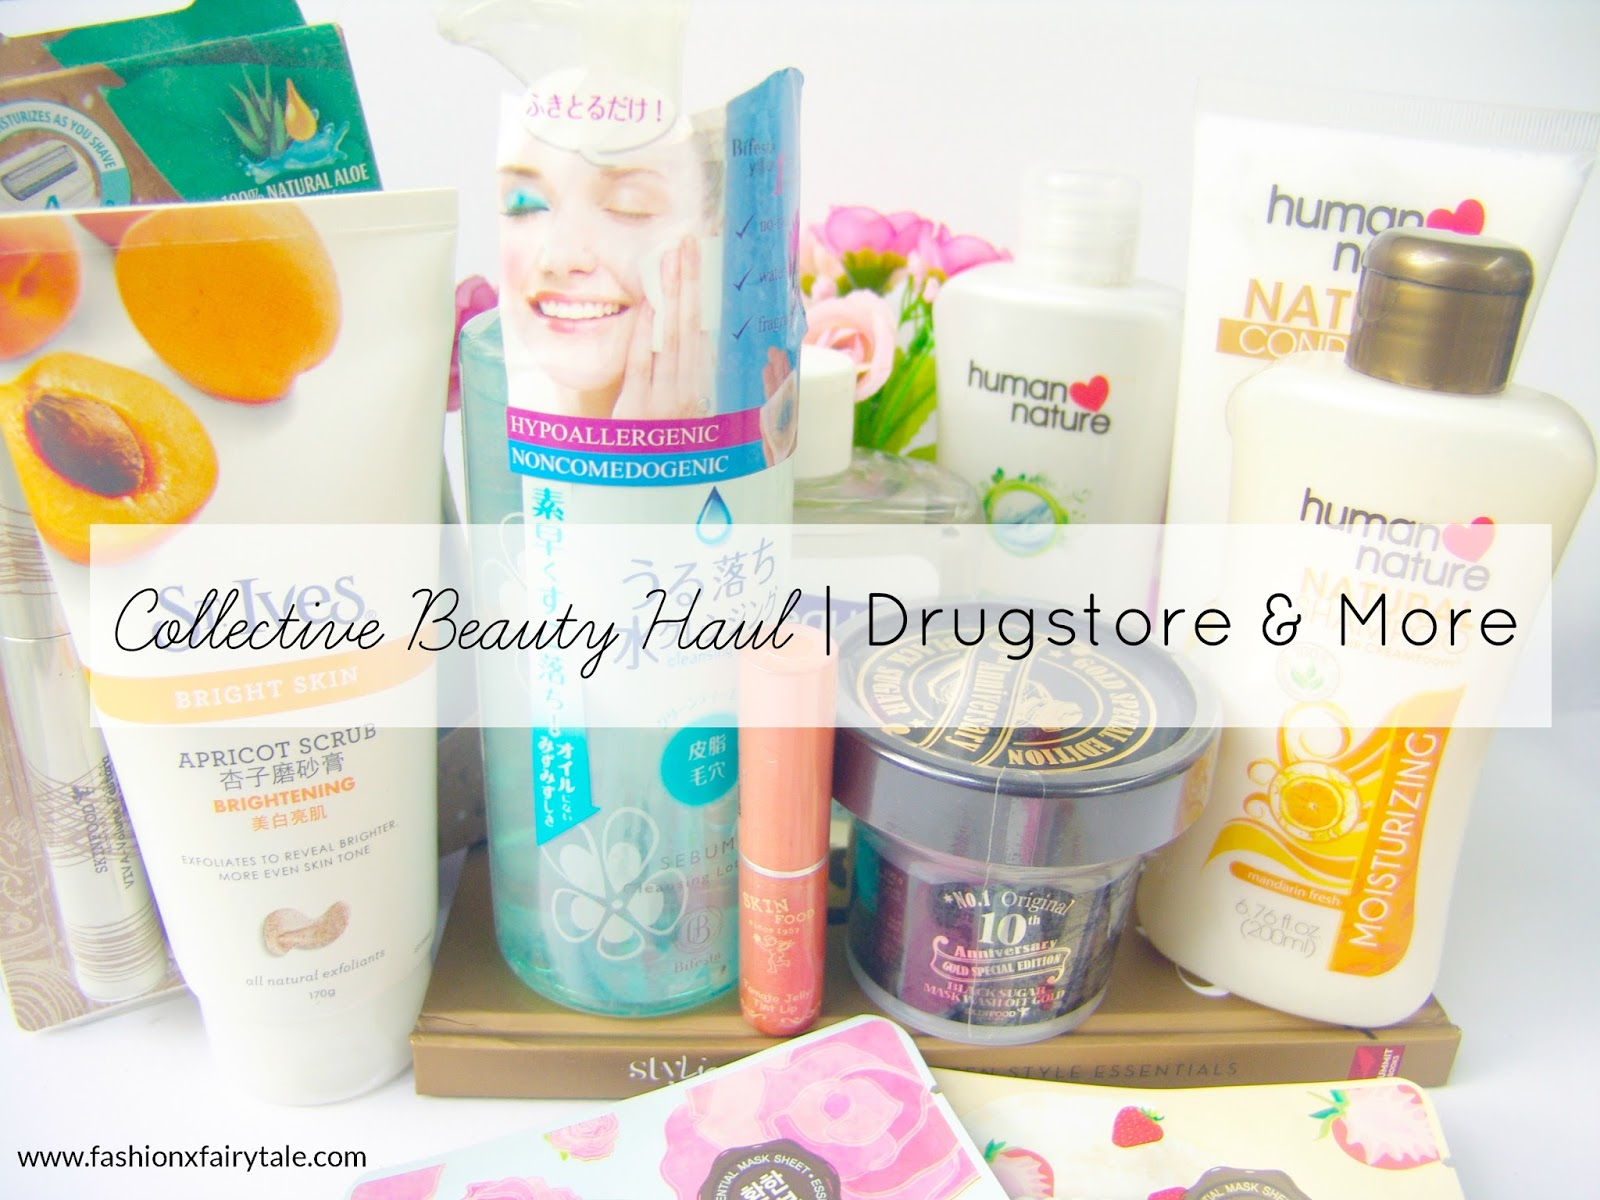 Collective Beauty Haul | Drugstore & More